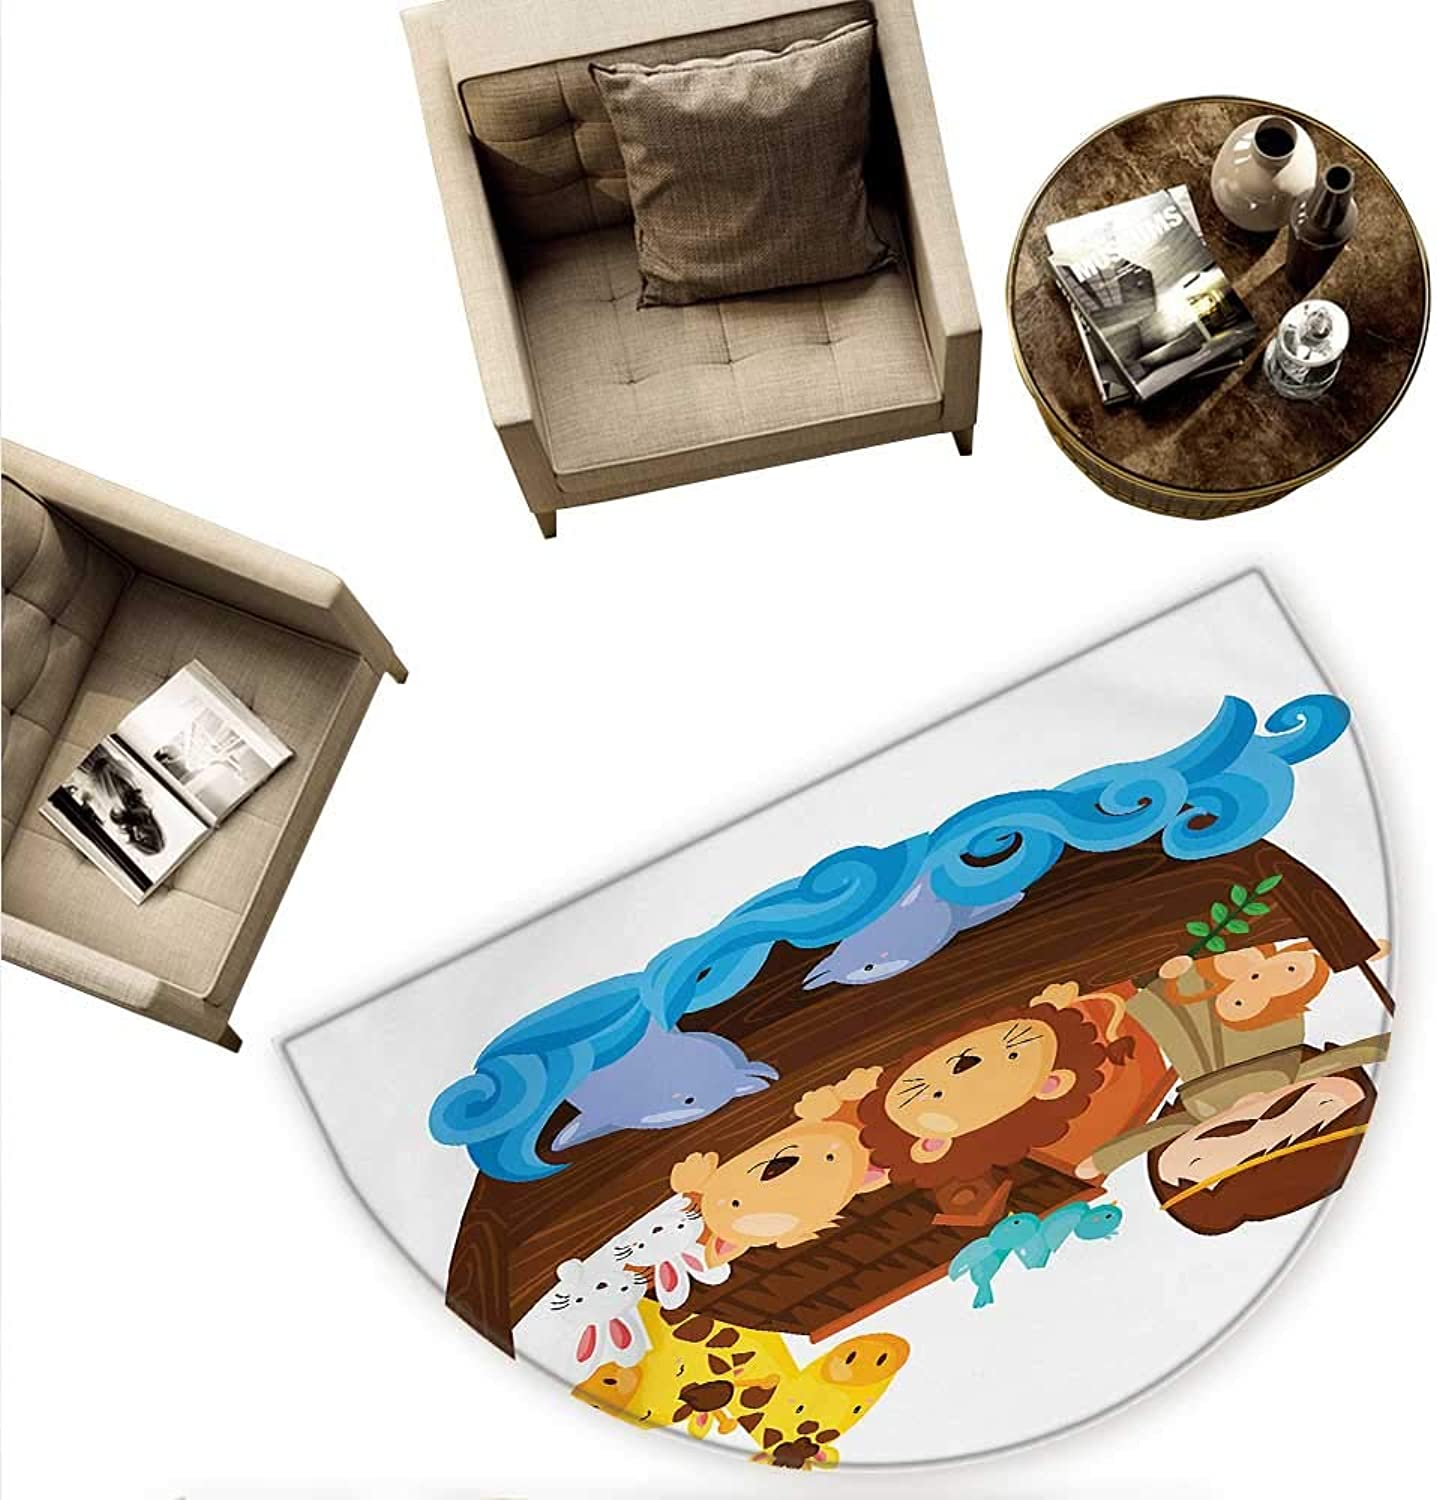 Religious Semicircular Cushion Historical Story of The Ark with All Animals Saving Nature Grace Illustration Entry Door Mat H 59  xD 88.6  Multicolor